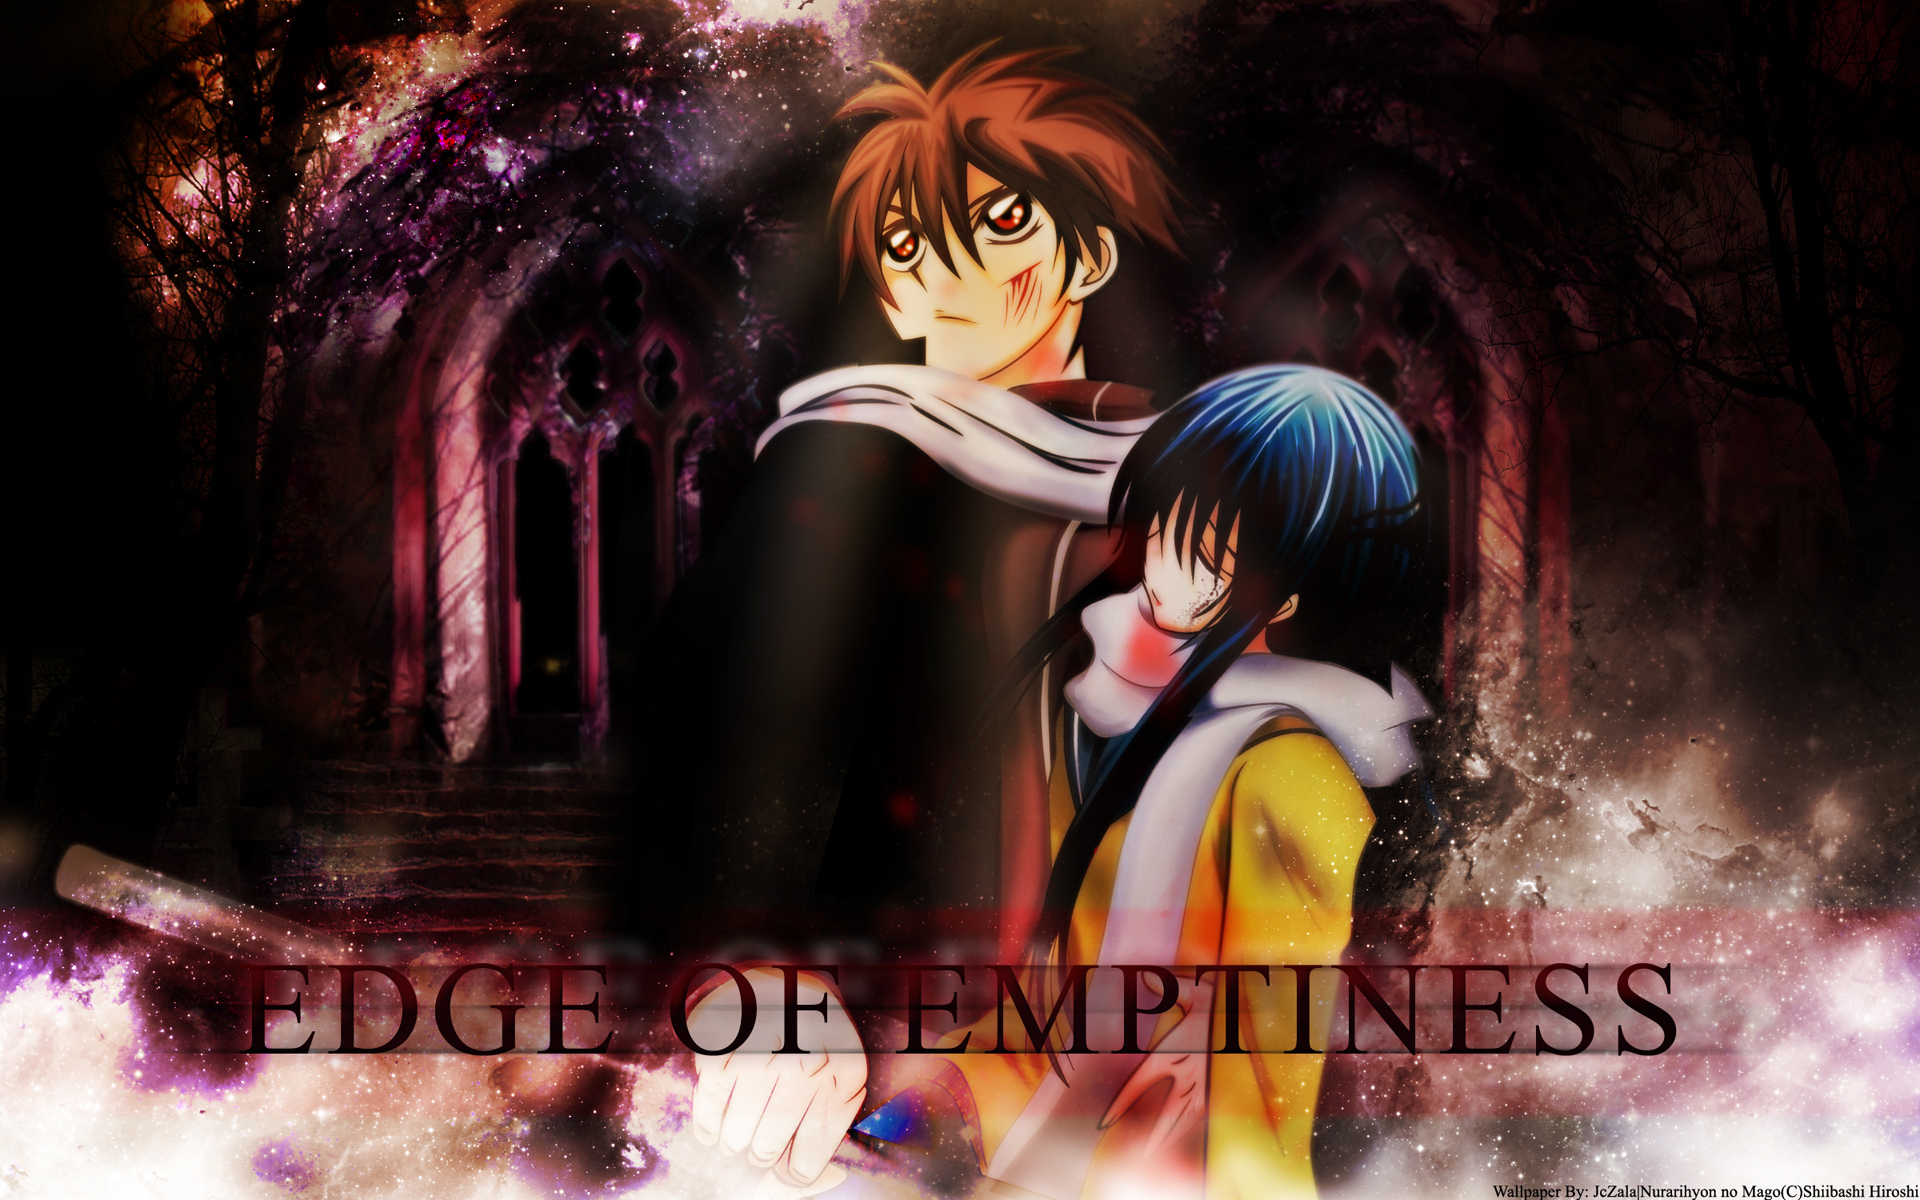 Nurarihyon no Mago Wallpaper: Edge of Emptiness - Minitokyo